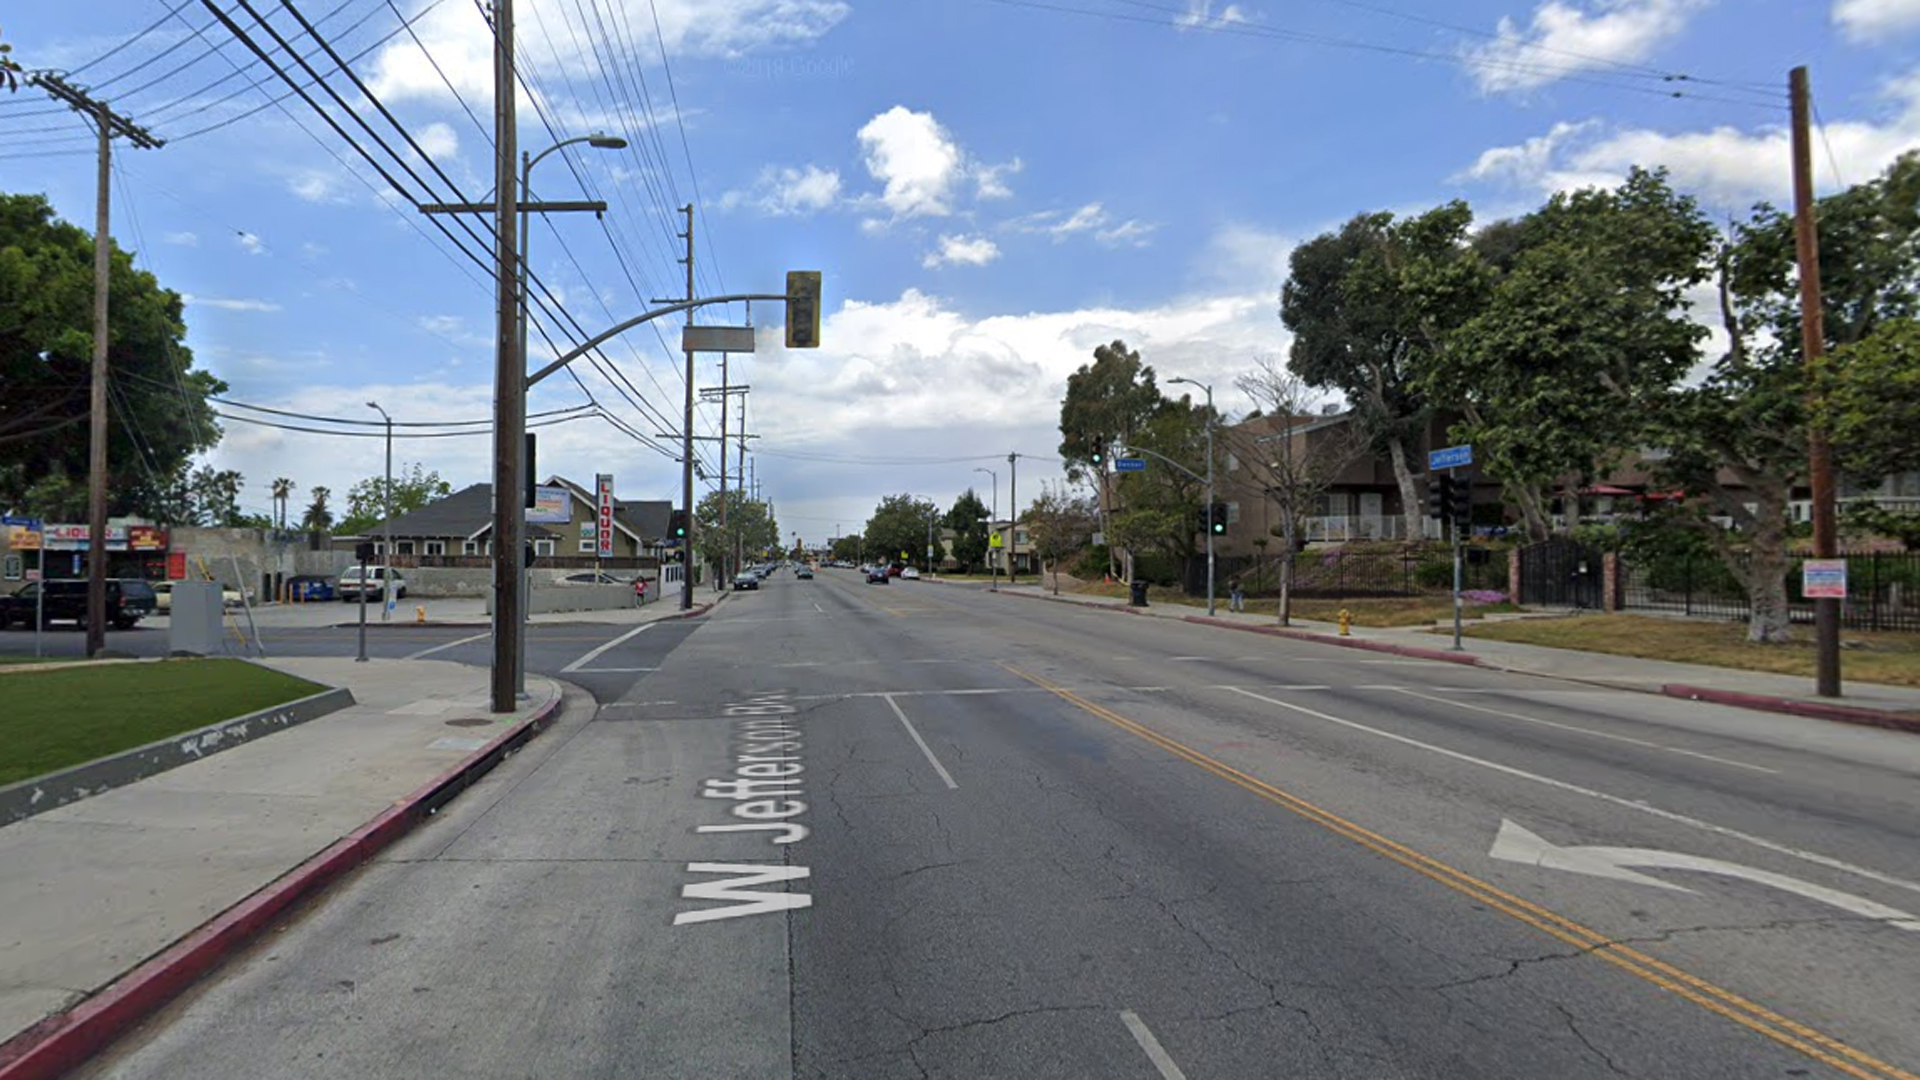 The intersection of Jefferson Boulevard and Denker Avenue in Los Angeles' Exposition Park neighborhood, as pictured in a Google Street View image in May of 2019.